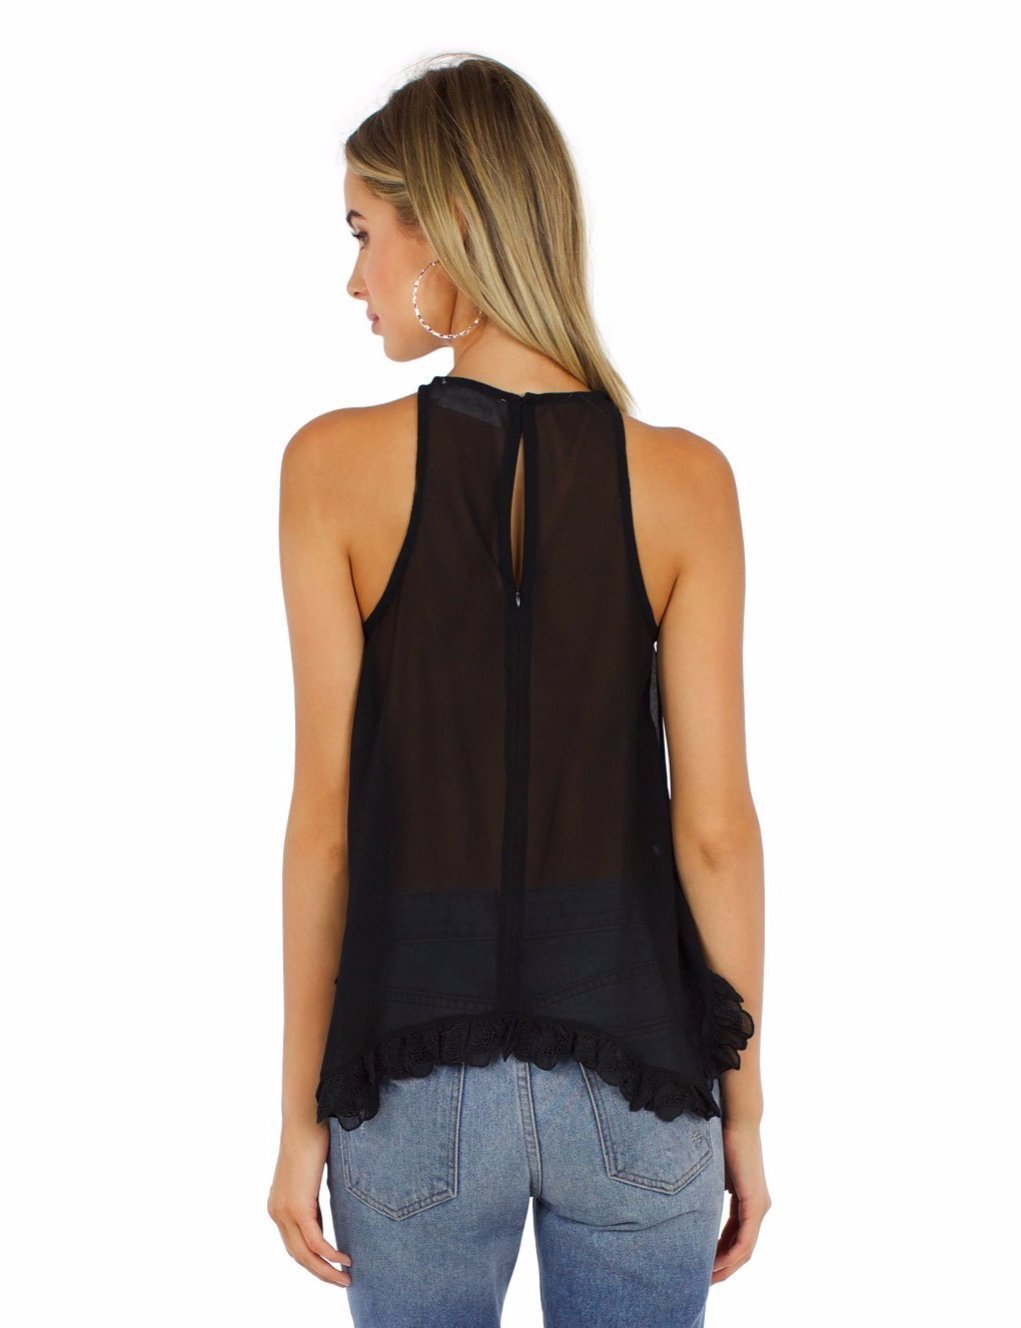 Women wearing a top rental from Line & Dot called Ramon Halter Top